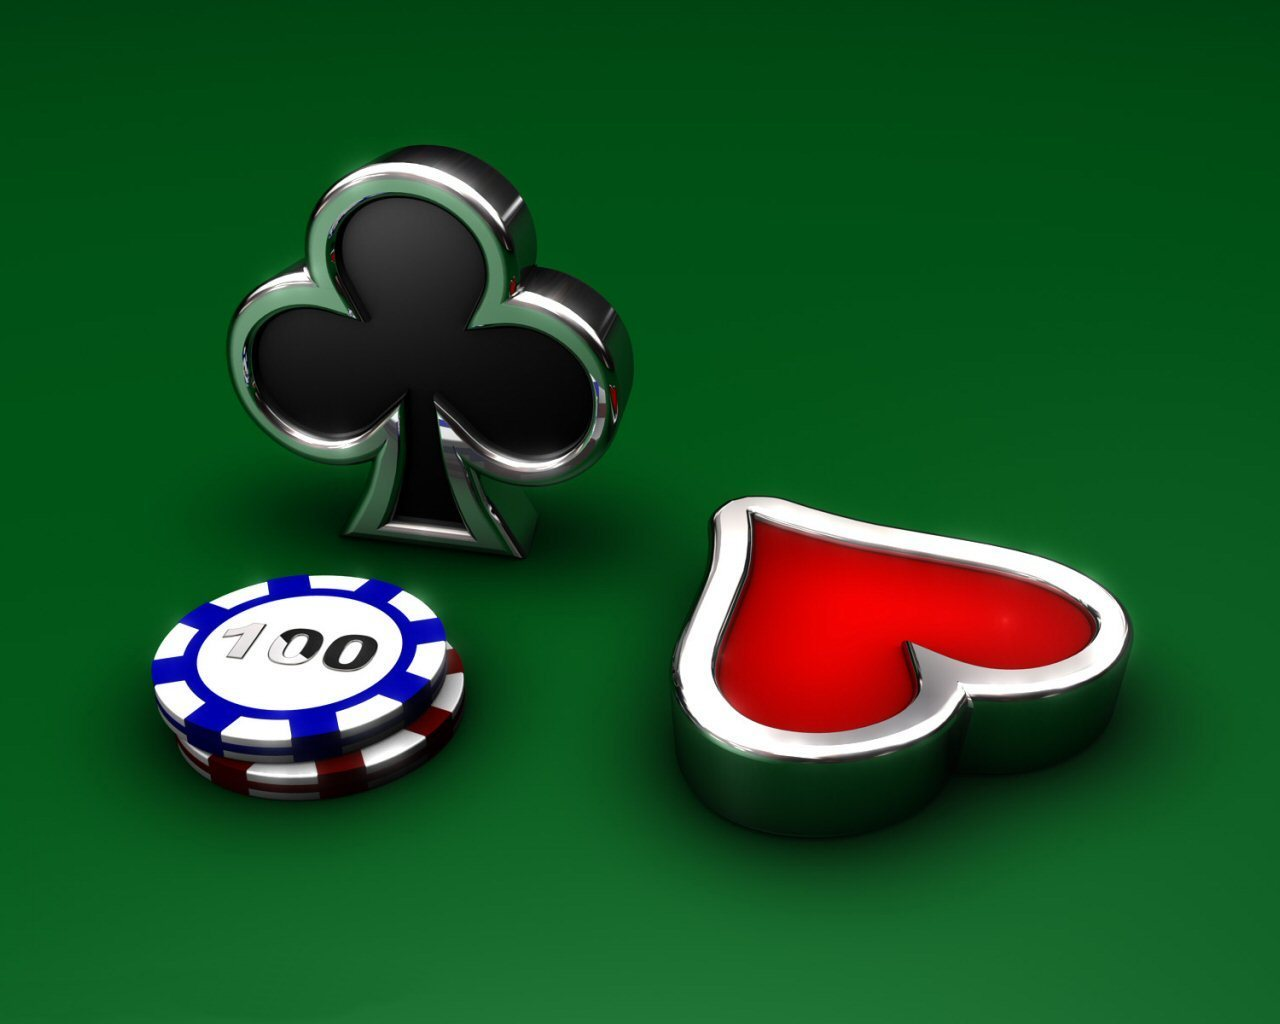 Now You Can Have The Casino Tips Of Your Dreams